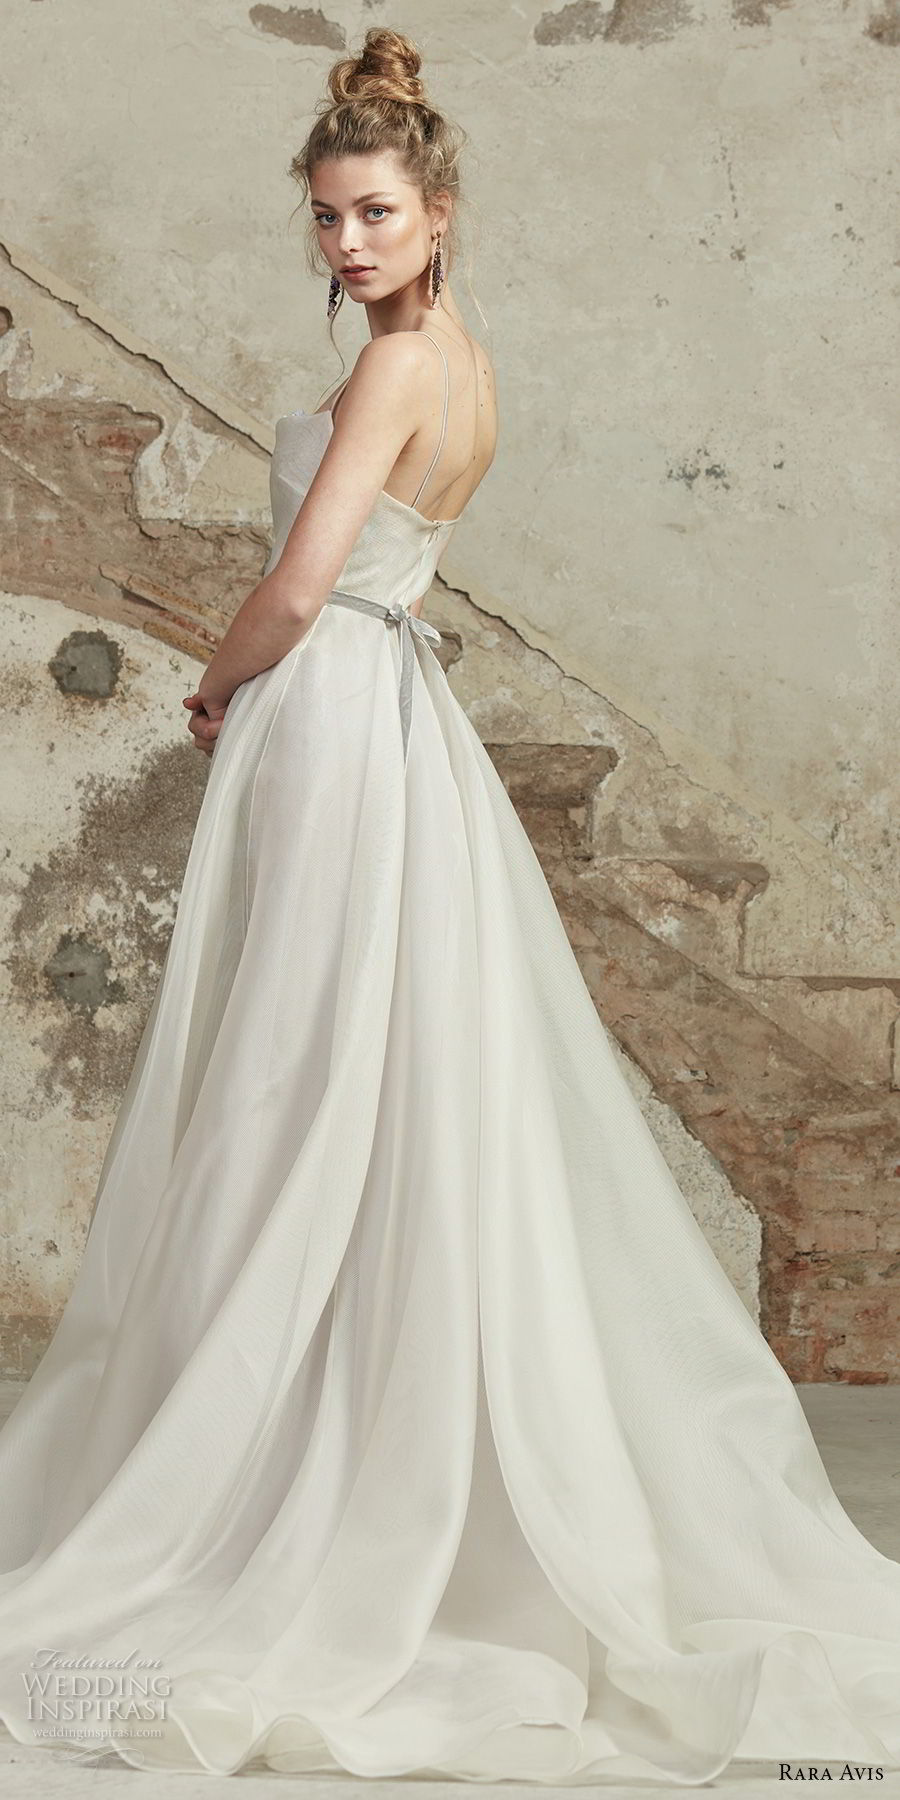 rara avis 2017 bridal spaghetti strap straight across necklne simple romantic a line wedding dress chapel train (8) bv